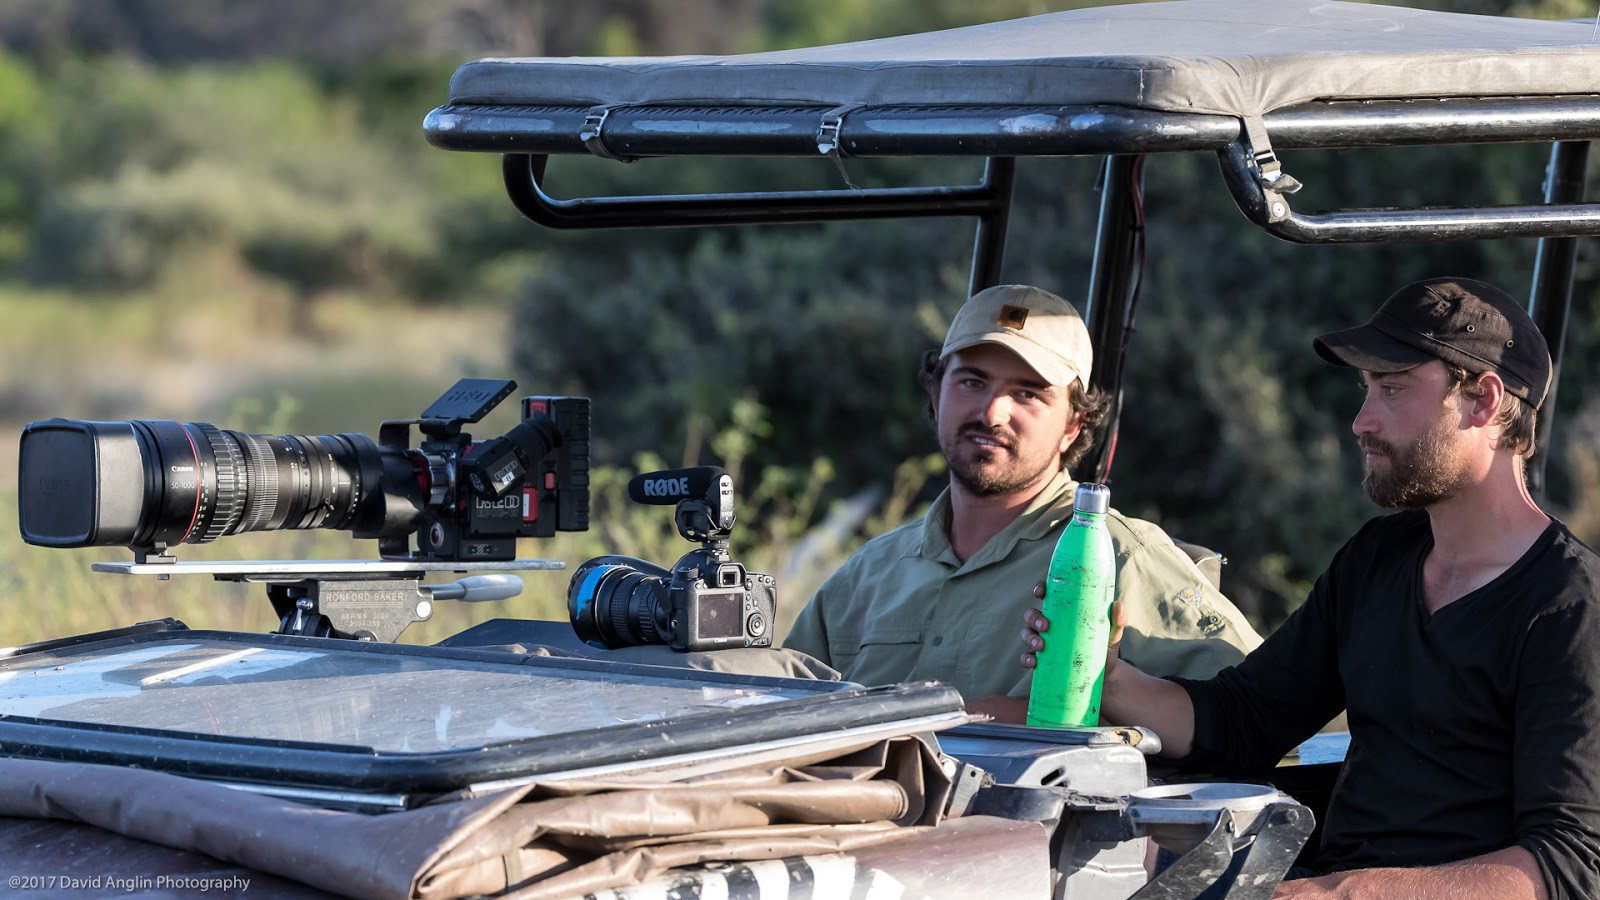 Guided conservation tour featuring a photographer and his guide in a safari vehicle